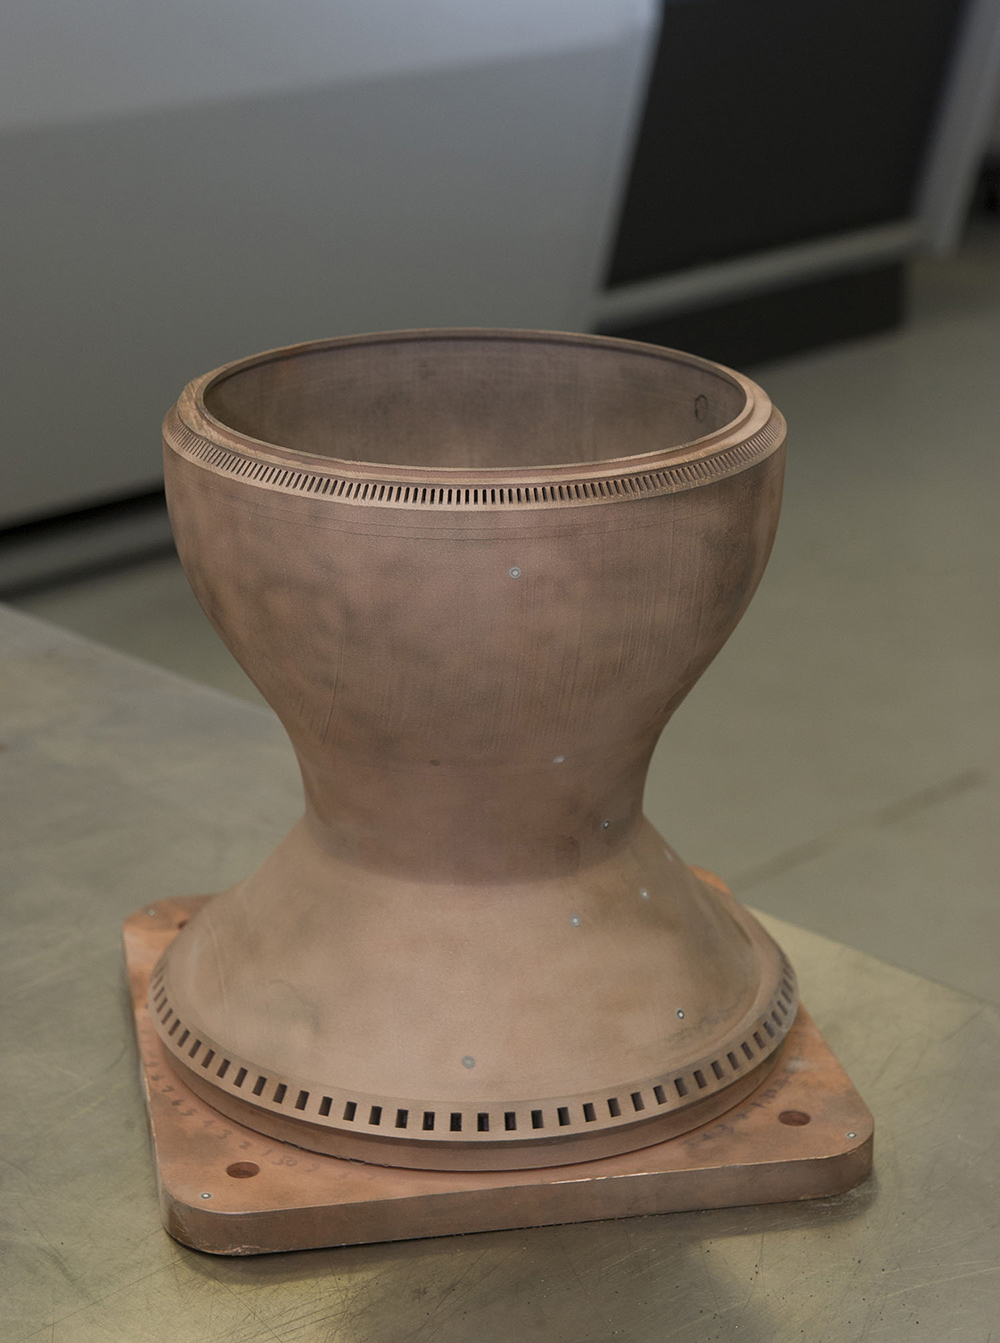 NASA_copper3D_1